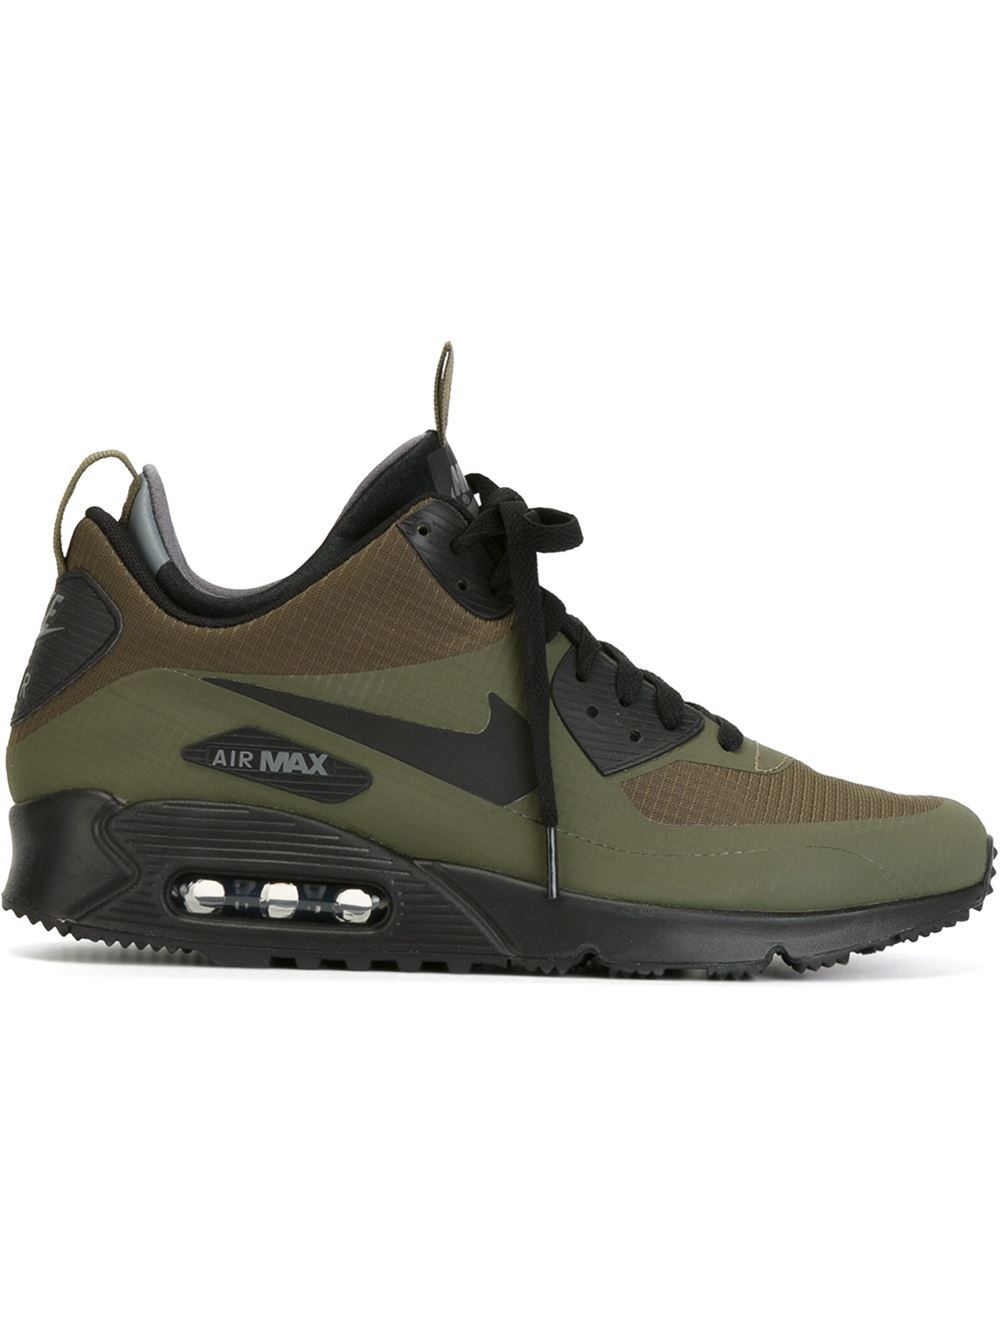 nike air max 90 mid winter sneaker boots in green for men. Black Bedroom Furniture Sets. Home Design Ideas